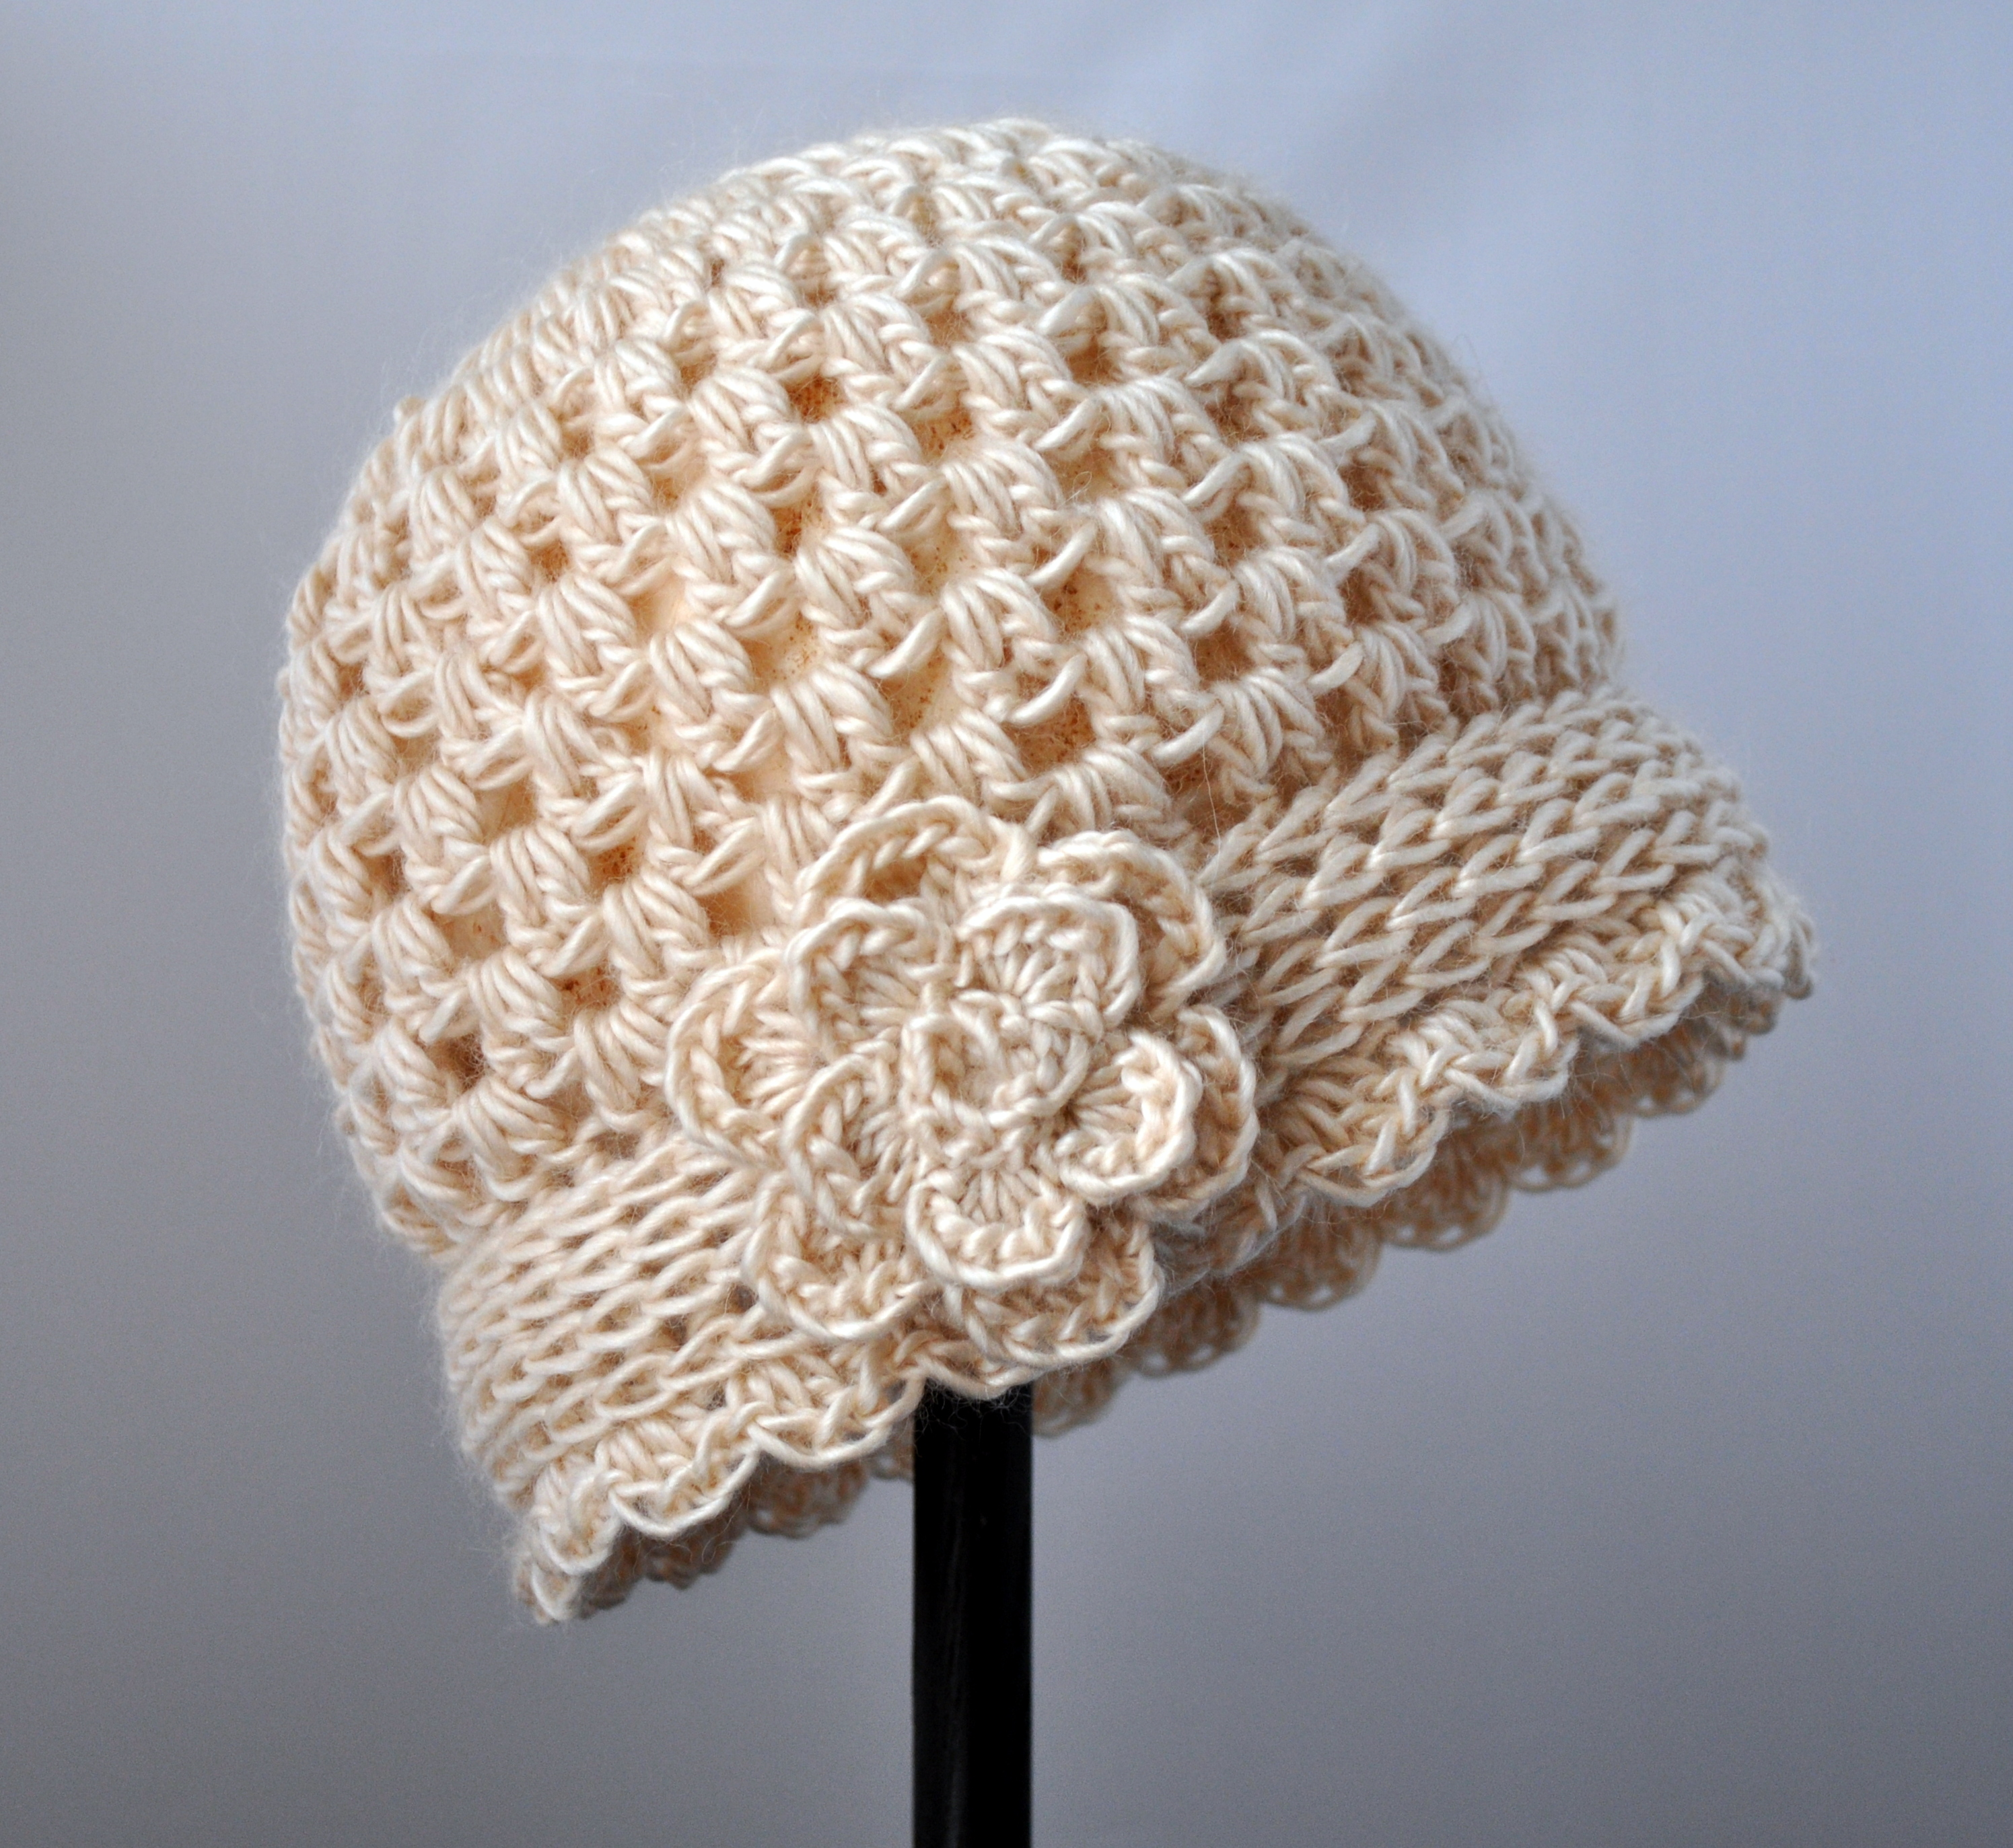 Patterns For Crochet : Crochet Patterns Classy Crochet